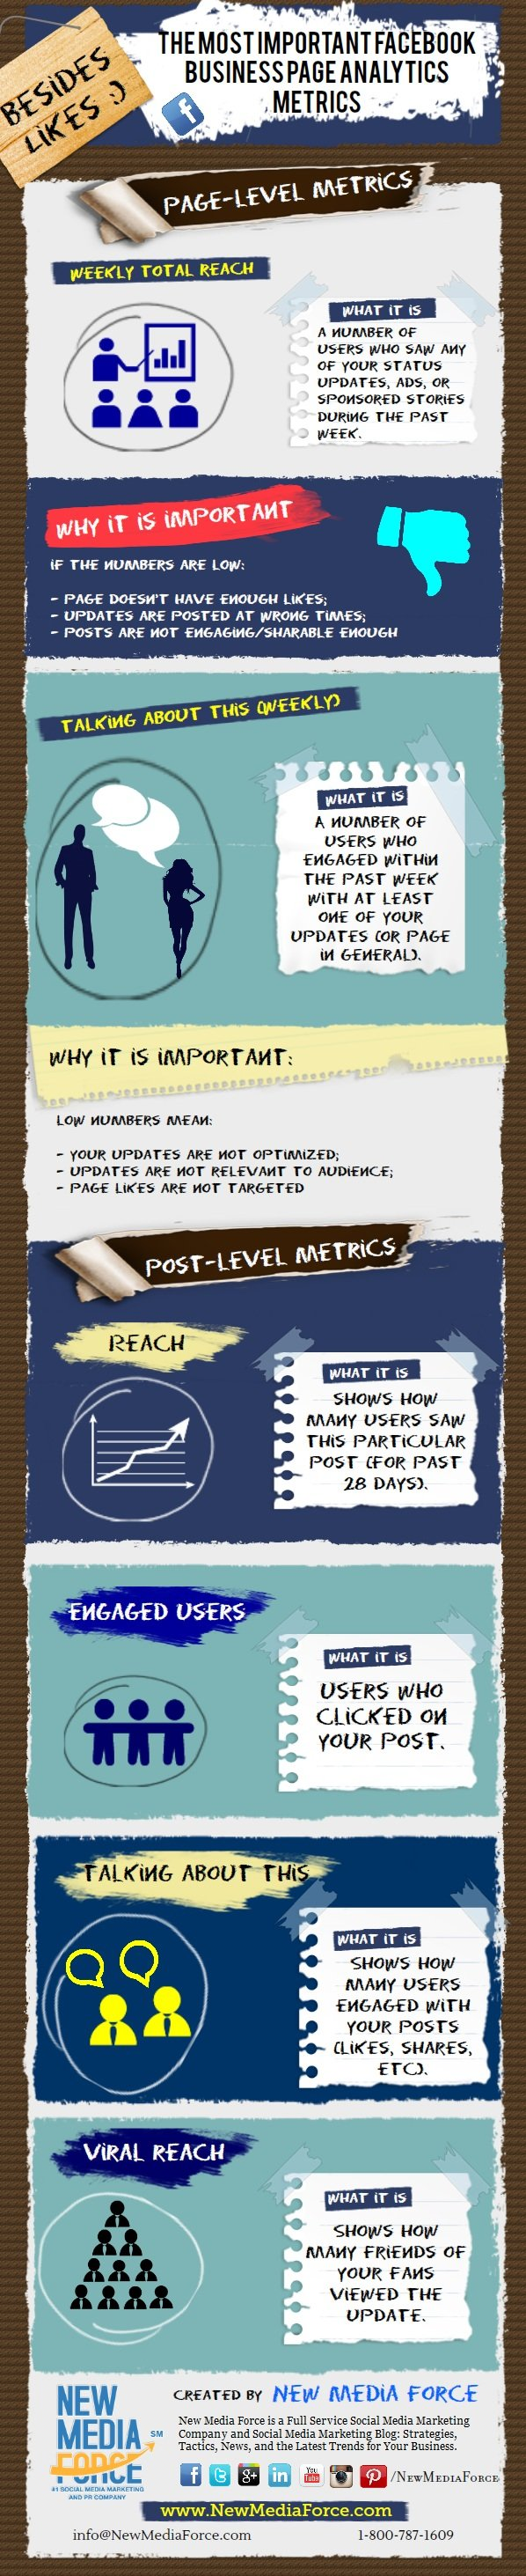 The most important facebook businesspage analytics metrics #infographic